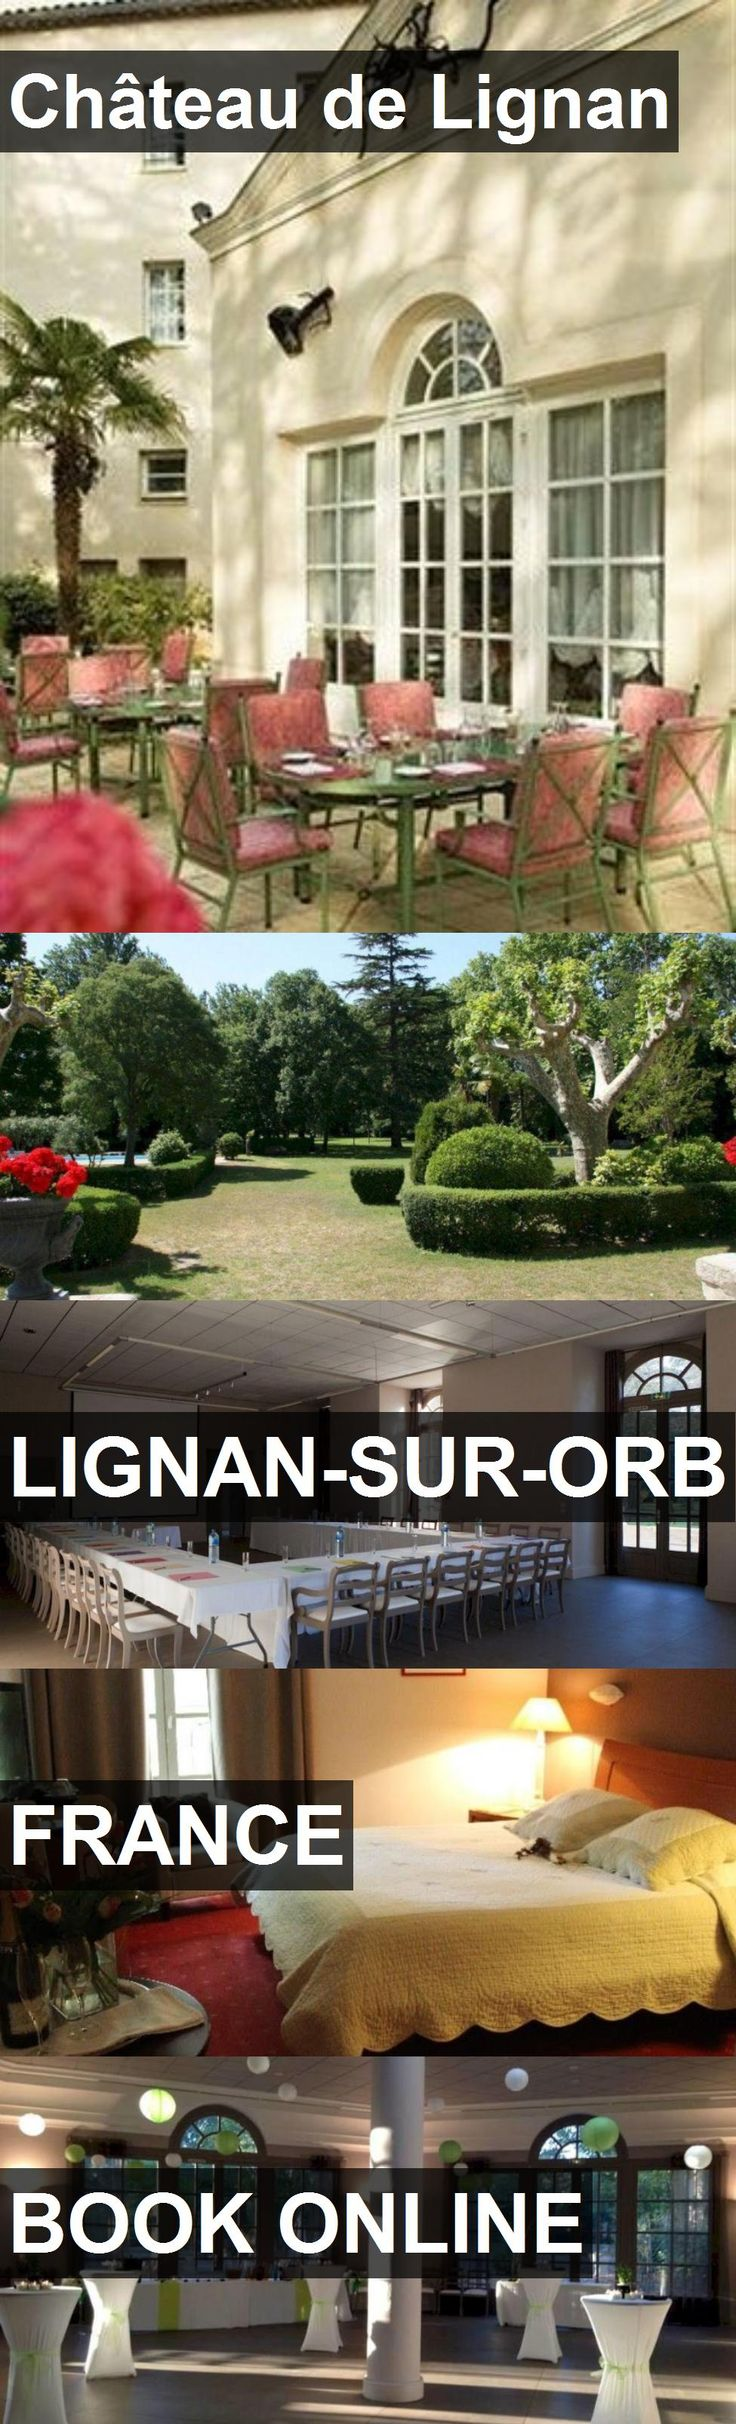 Hotel Château de Lignan in Lignan-sur-Orb, France. For more information, photos, reviews and best prices please follow the link. #France #Lignan-sur-Orb #travel #vacation #hotel